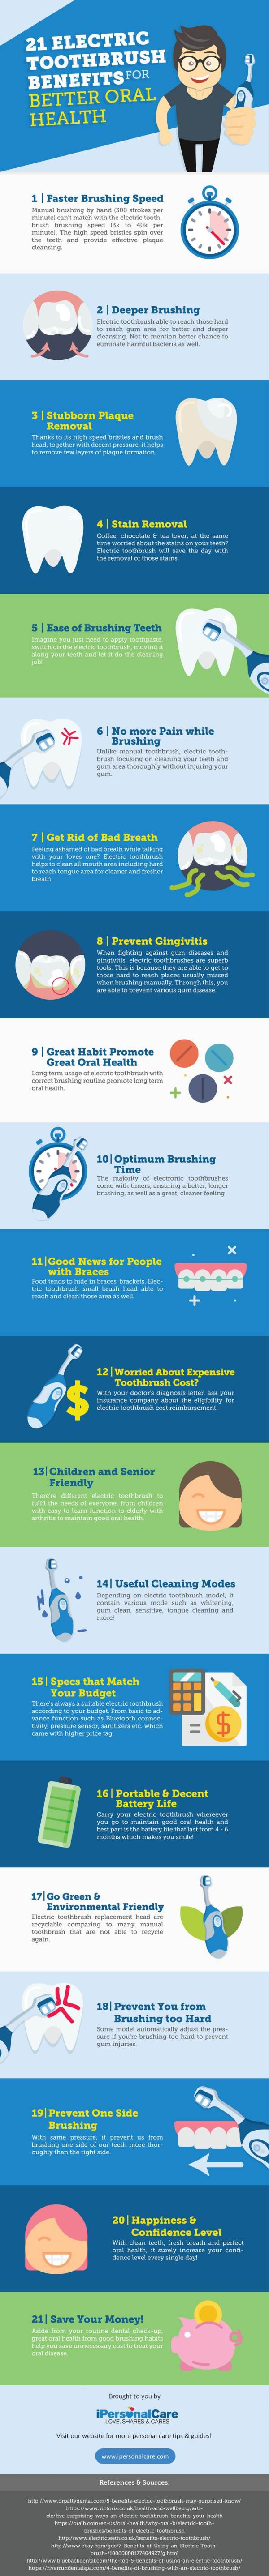 21-Electric-Toothbrush-Benefits-for-Better-Oral-Health